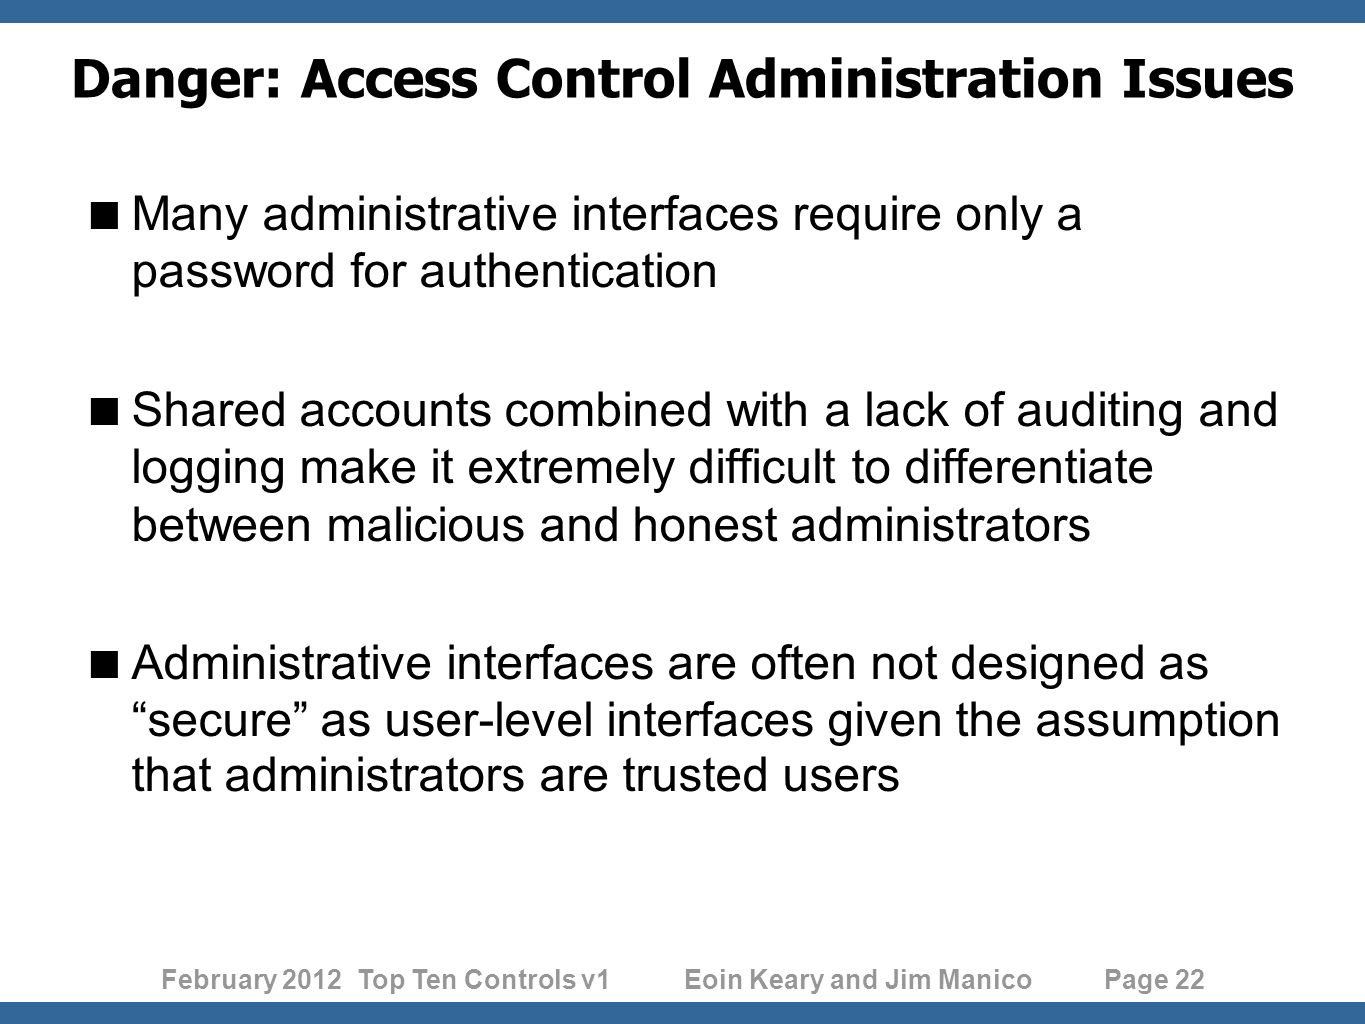 February 2012 Top Ten Controls v1 Eoin Keary and Jim Manico Page 22 Danger: Access Control Administration Issues Many administrative interfaces require only a password for authentication Shared accounts combined with a lack of auditing and logging make it extremely difficult to differentiate between malicious and honest administrators Administrative interfaces are often not designed assecure as user-level interfaces given the assumption that administrators are trusted users